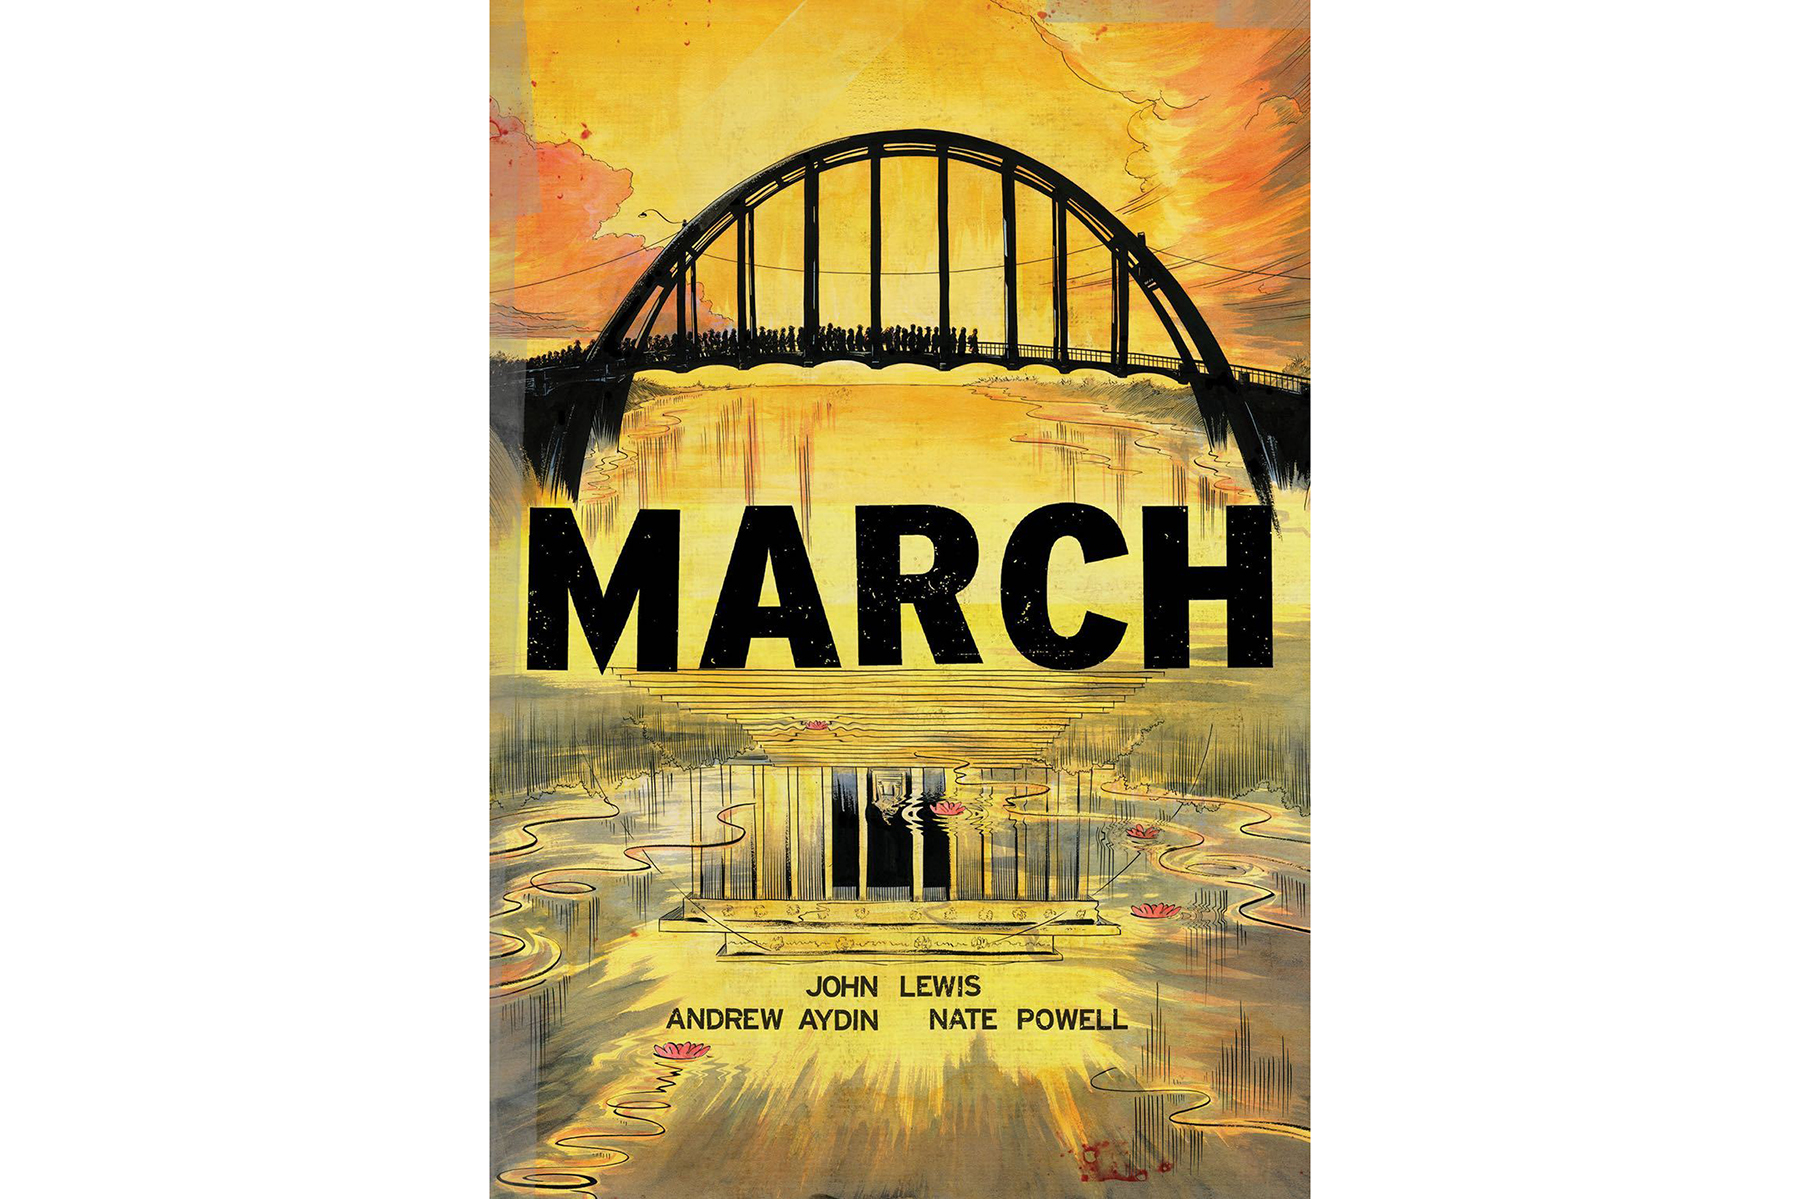 March, Books 1-3, by John Lewis, Andrew Aydin, and Nate Powell Cover